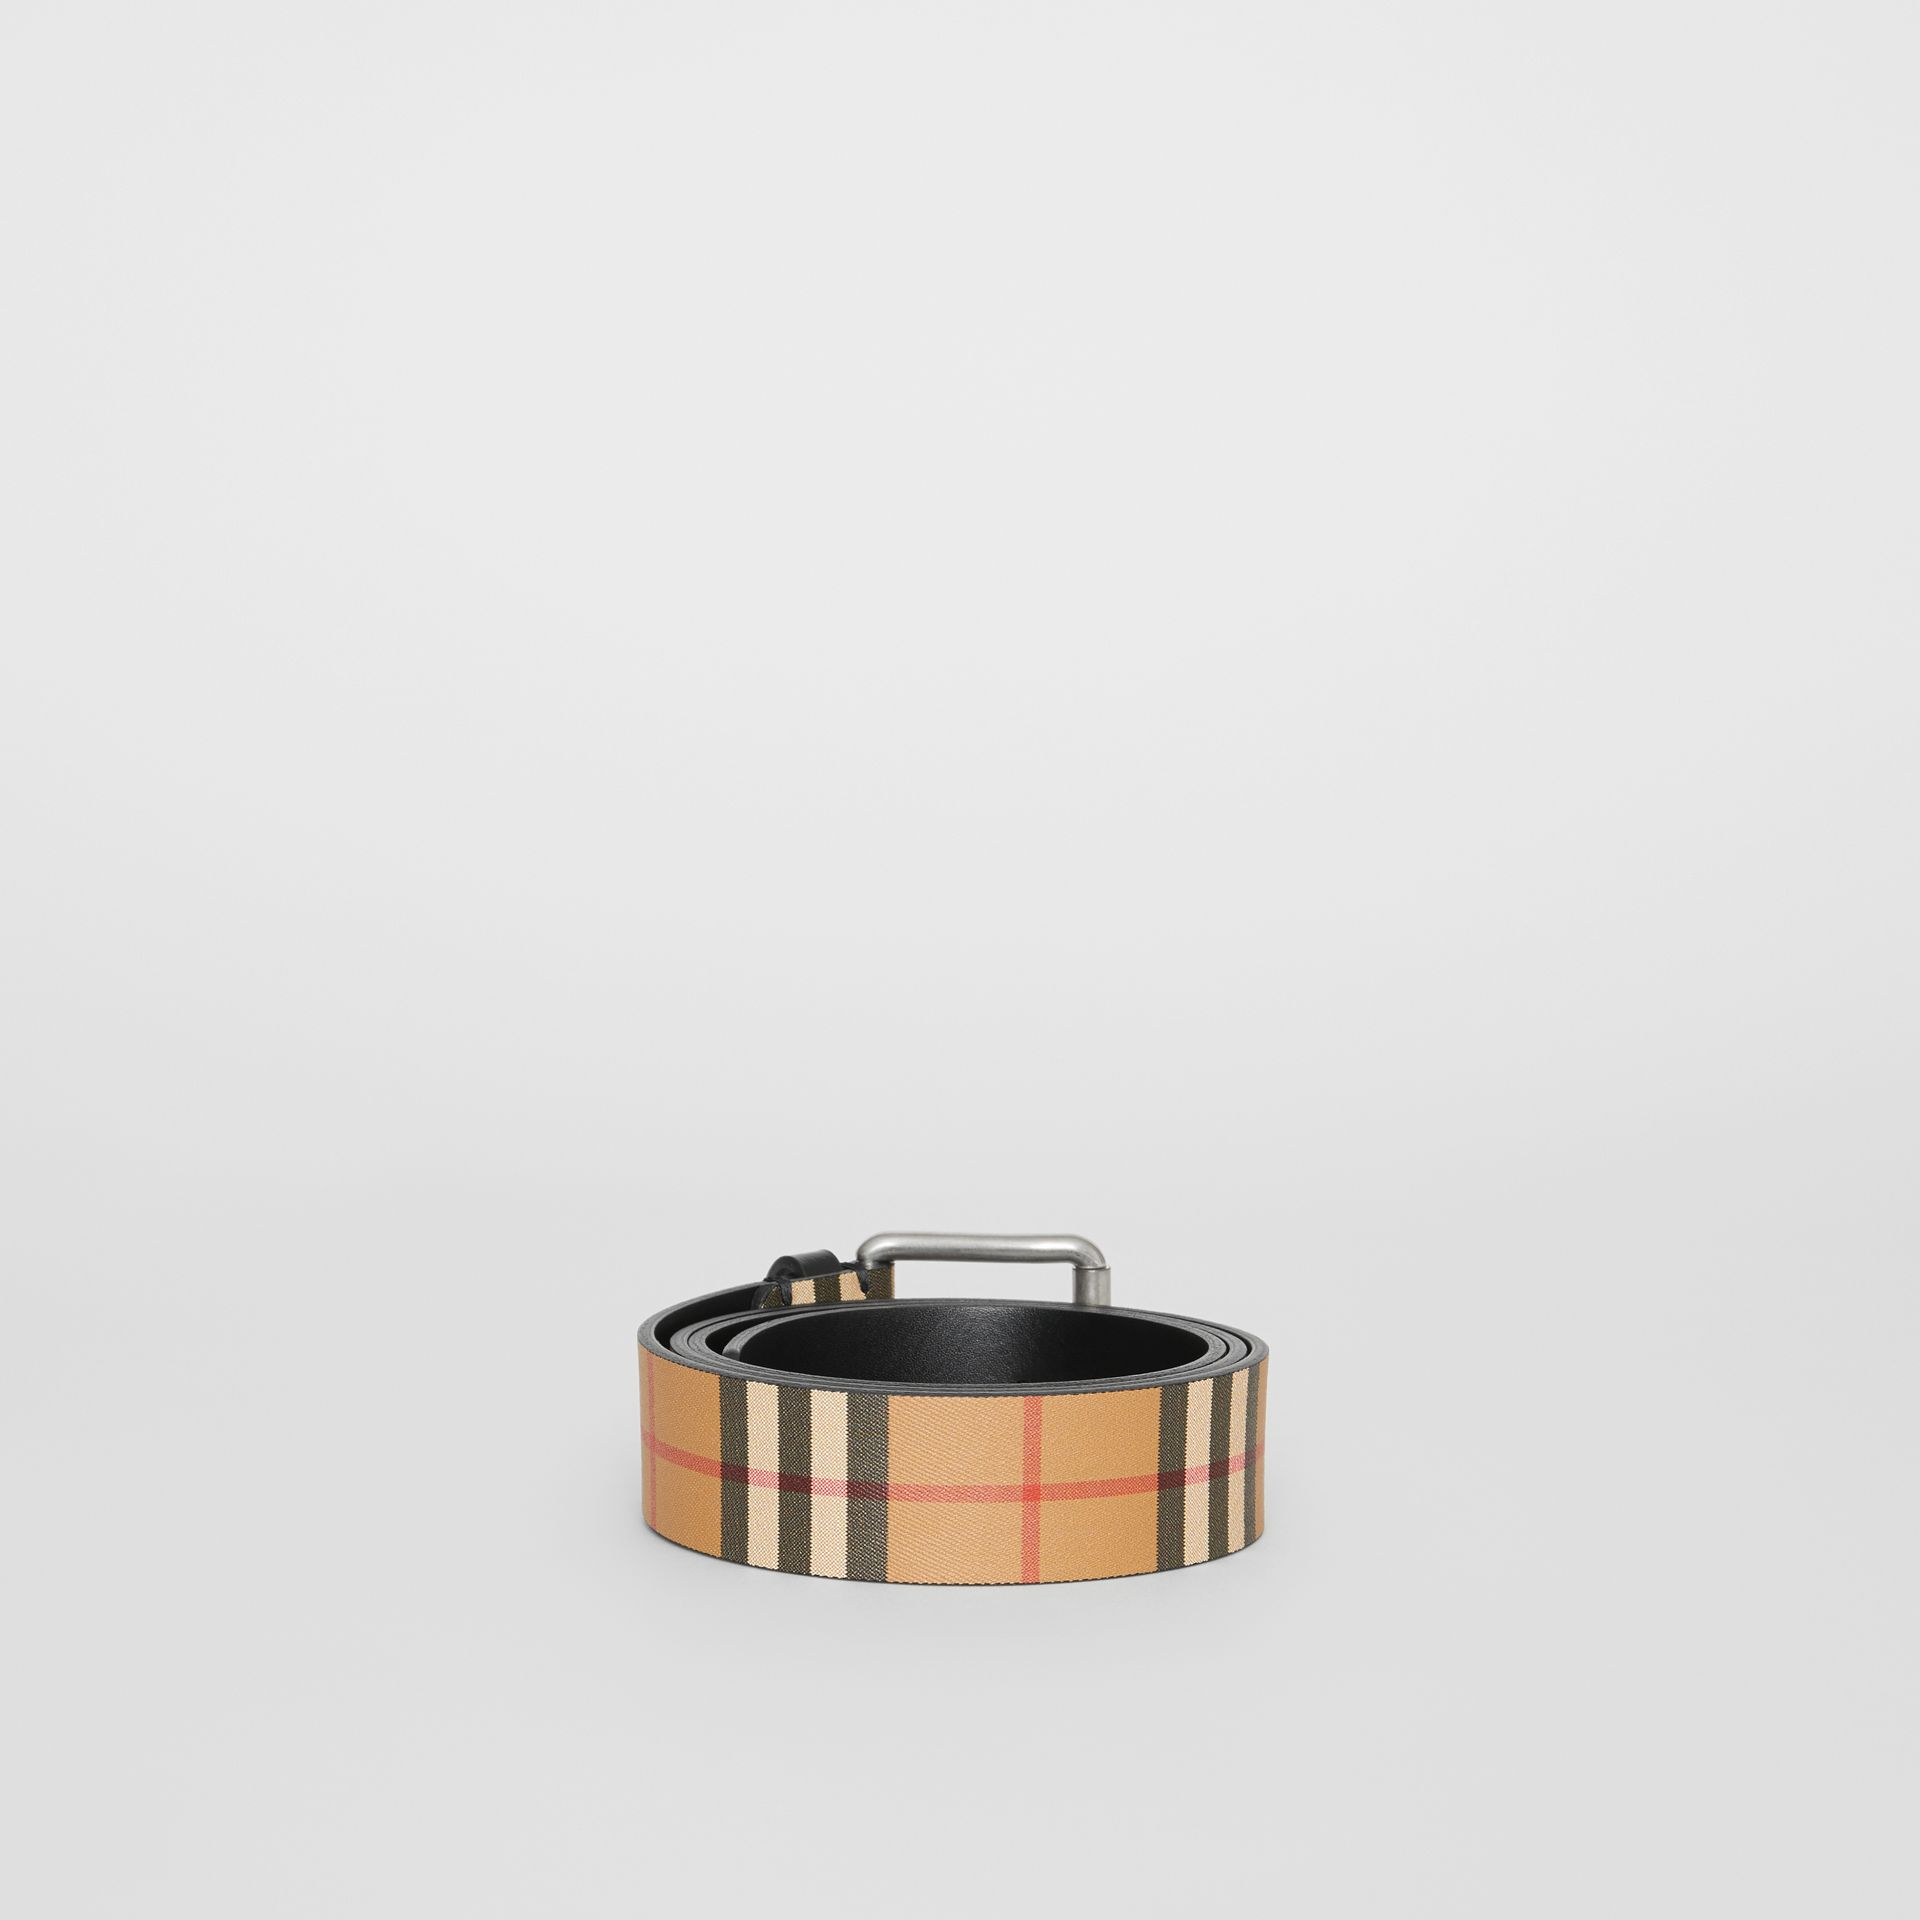 Vintage Check Leather Belt in Black - Men | Burberry United Kingdom - gallery image 4